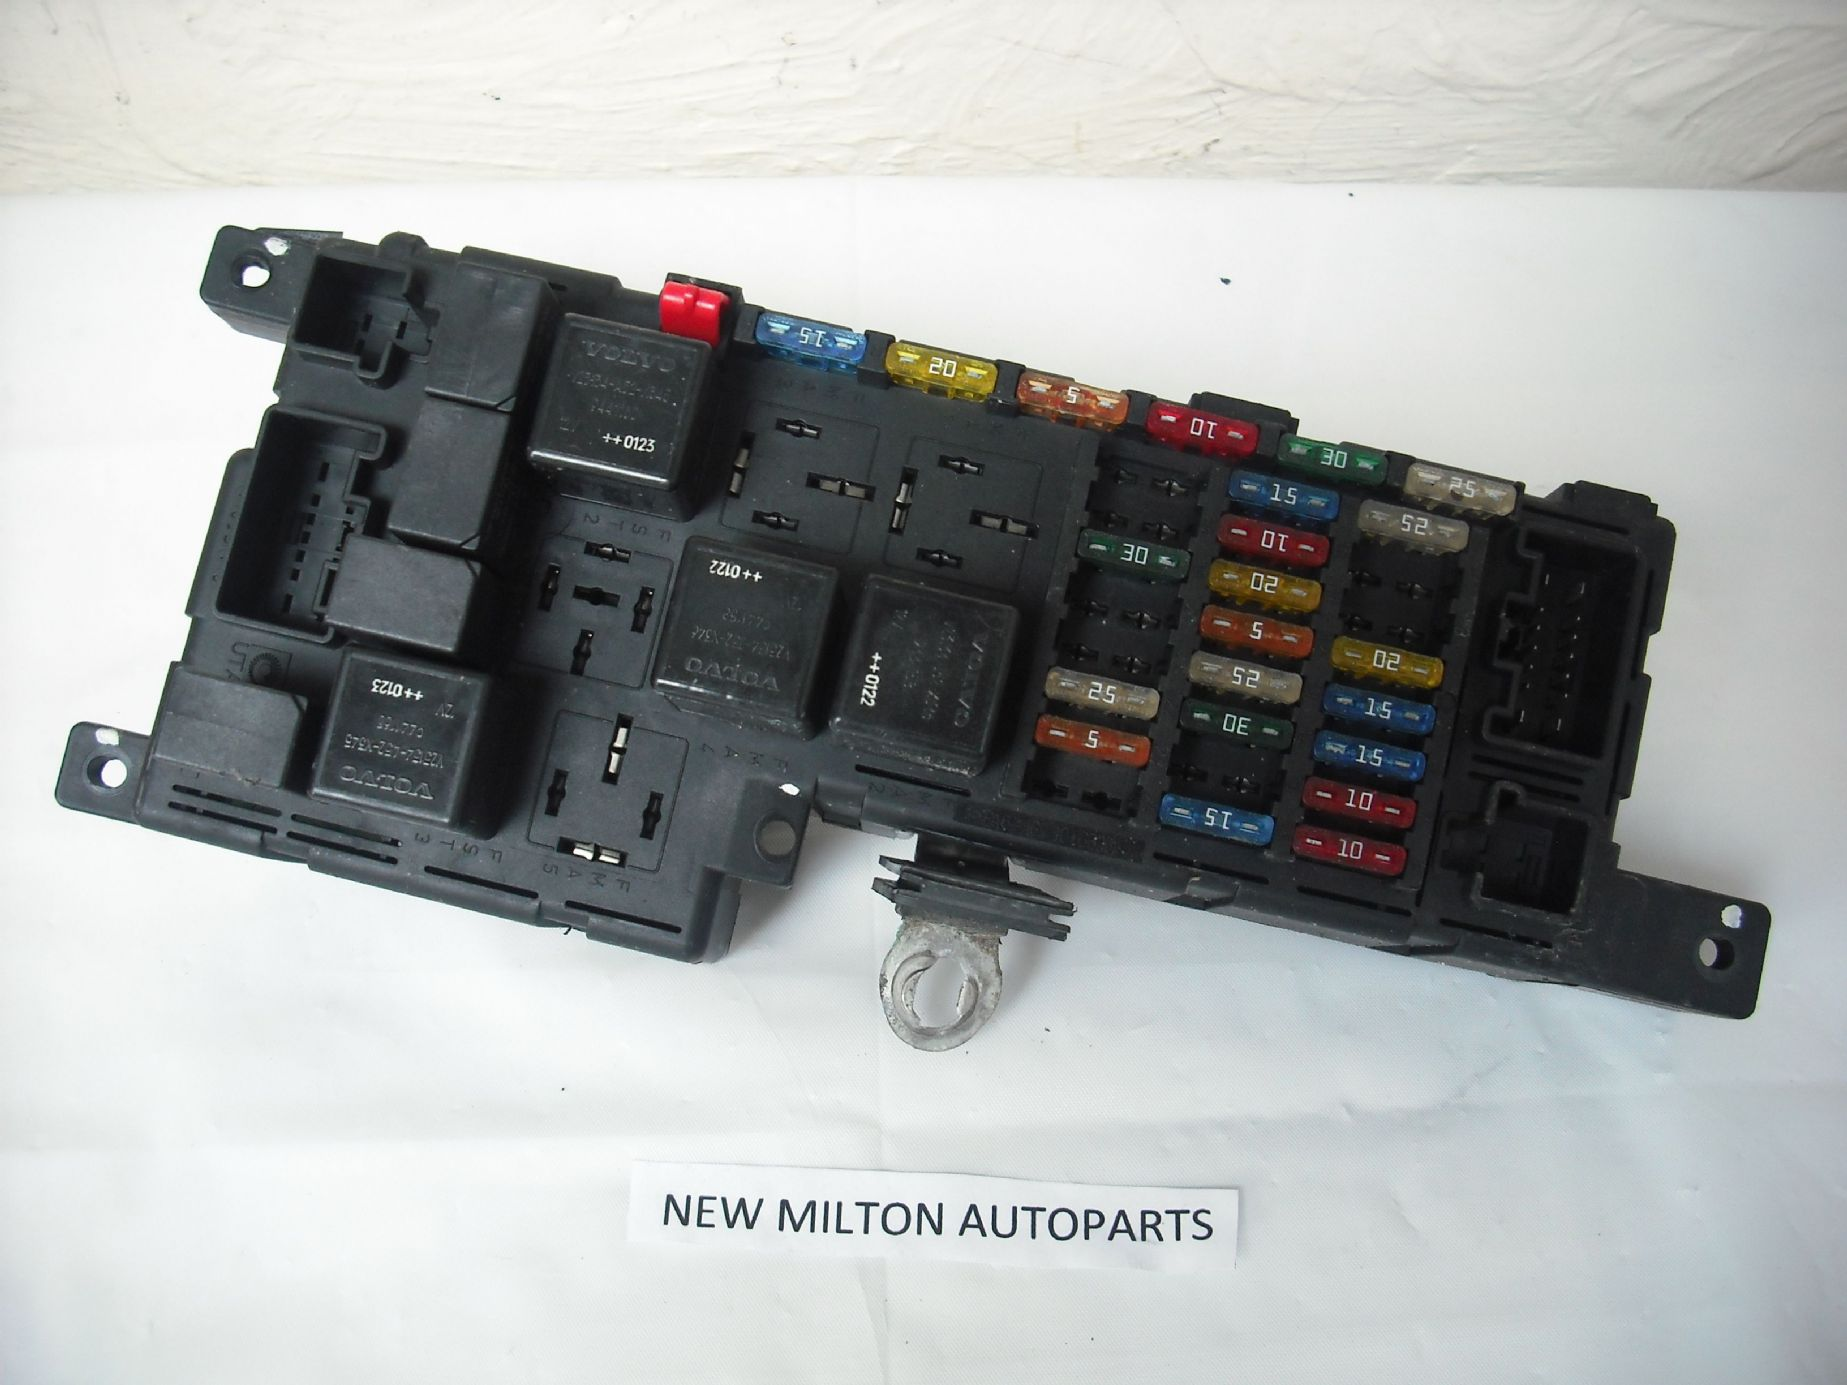 1999 Volvo V70 Fuse Box Automotive Wiring Diagram S60 Engine S80 Bay Controller Petrol S70